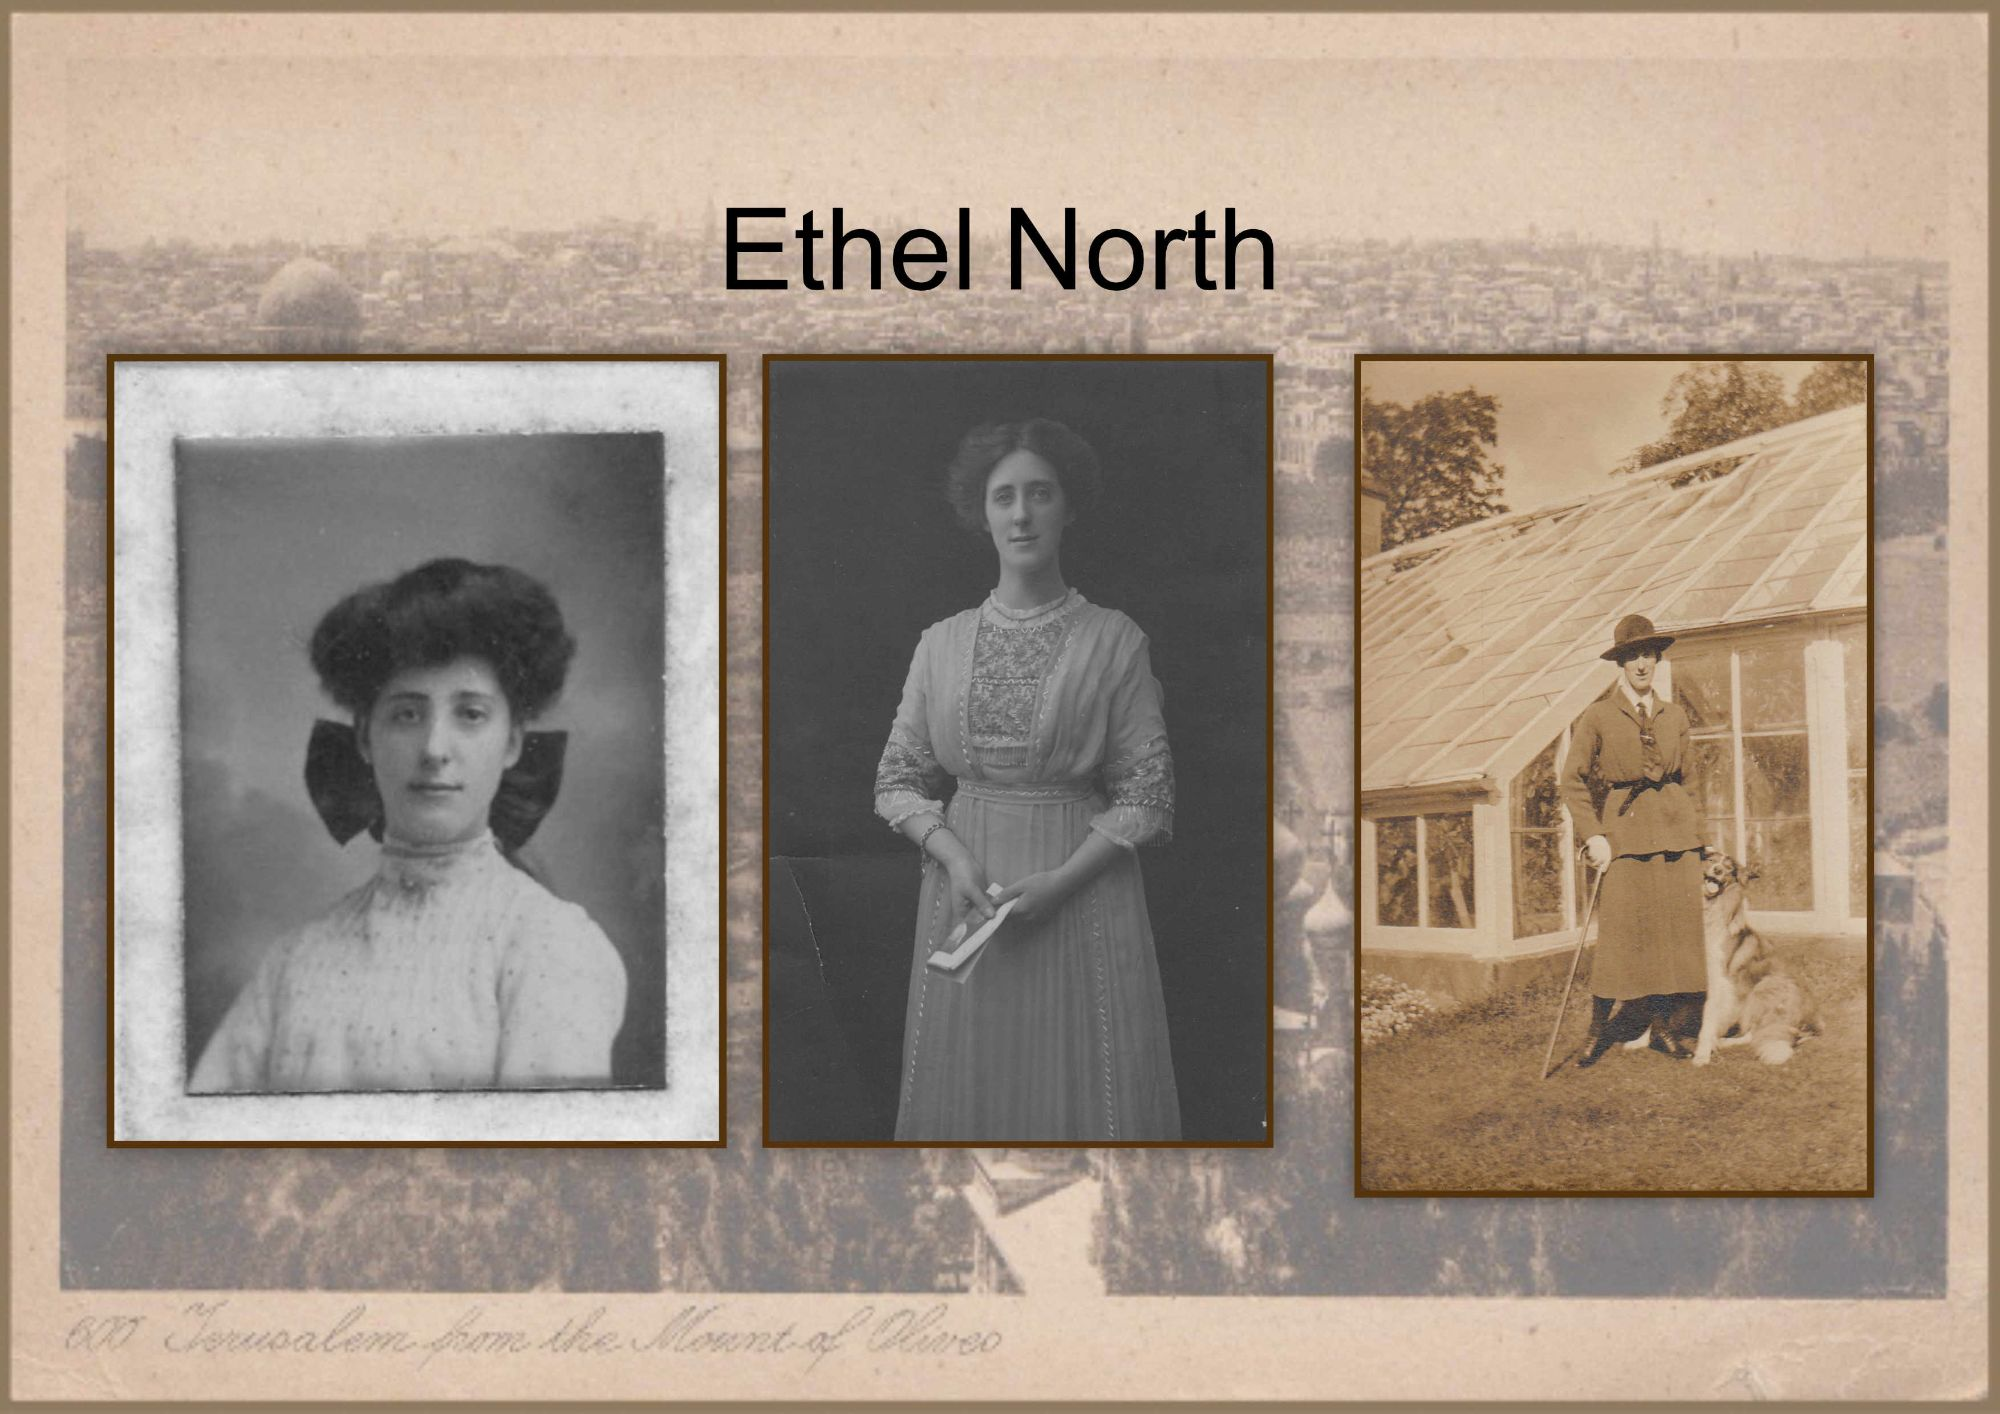 ethel north.jpg